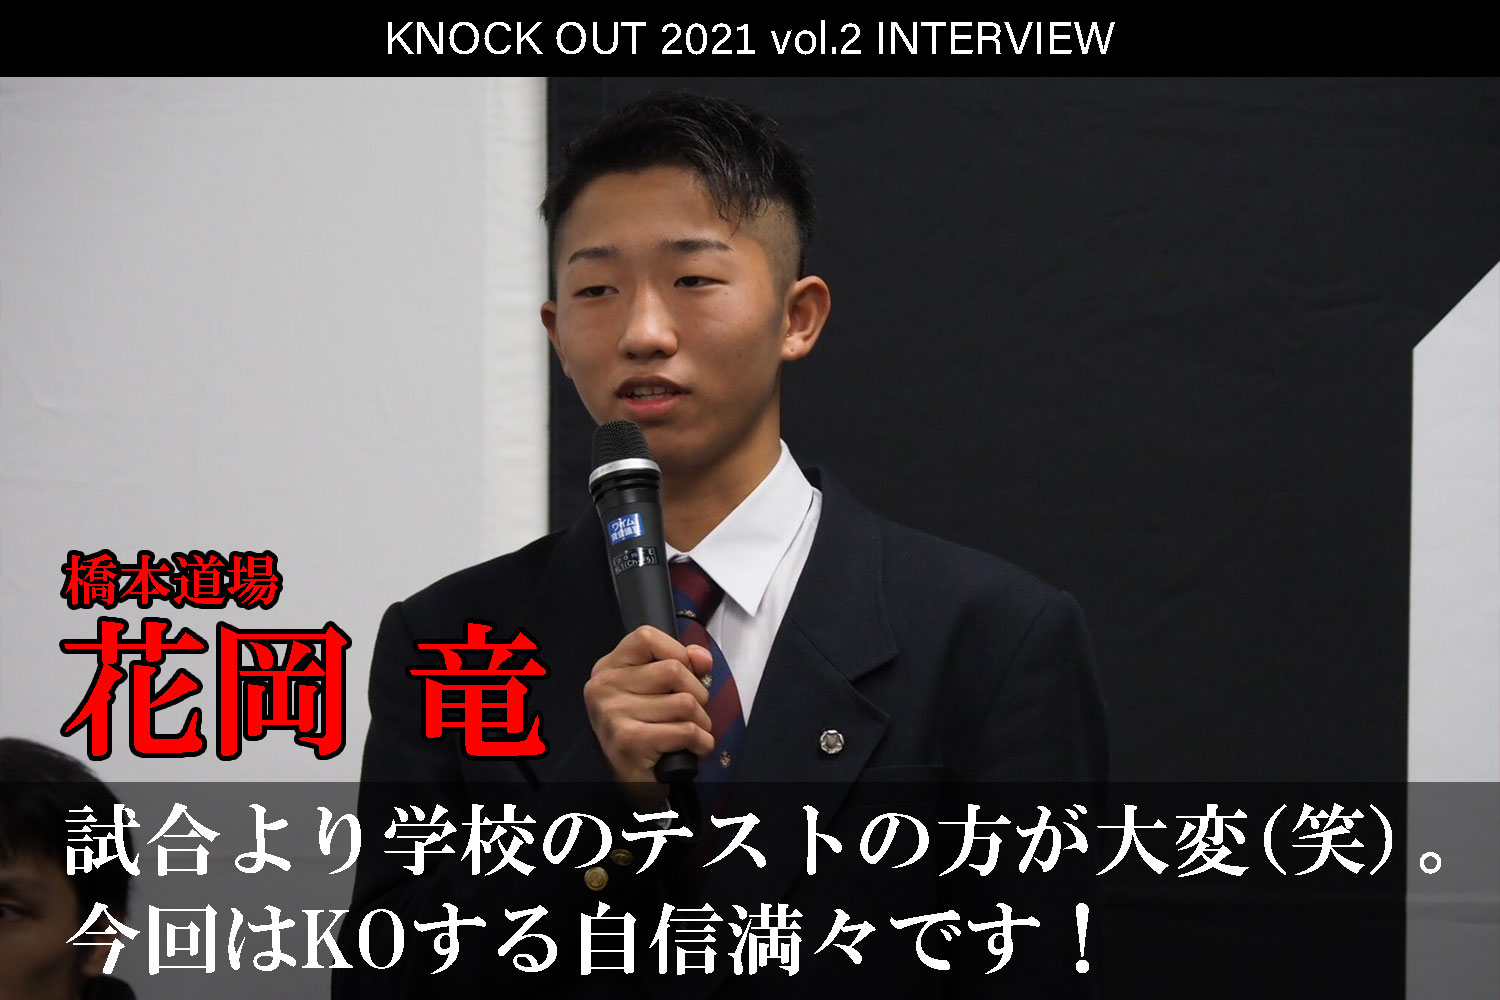 4.25 KNOCK OUT 2021 vol.2|花岡竜インタビュー公開!